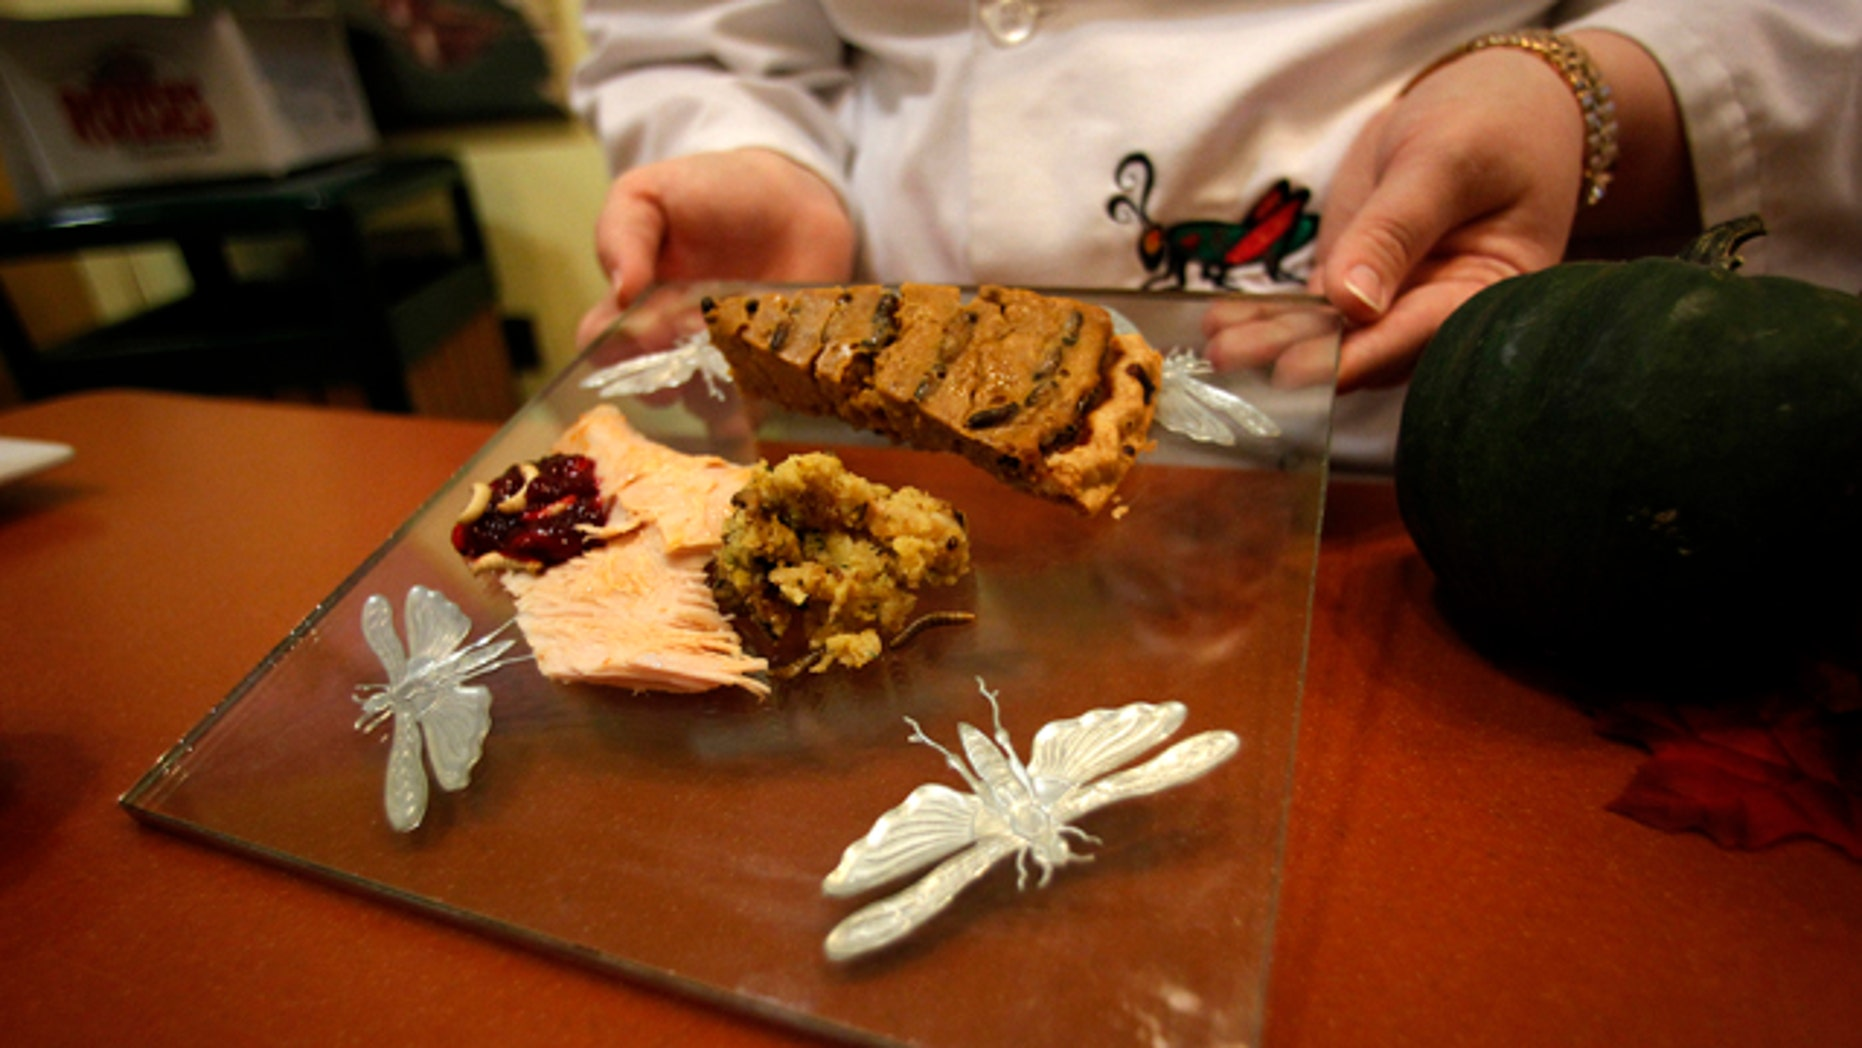 Nov. 11, 2011: Stephanie Smith, an educator at the Audubon Insectarium in New Orleans, shows off a plate of cranberry sauce with wax worms, cricket pumpkin pie, and turkey with cornbread and mealworm stuffing, for visitors to sample Thanksgiving-inspired foods made with insects.